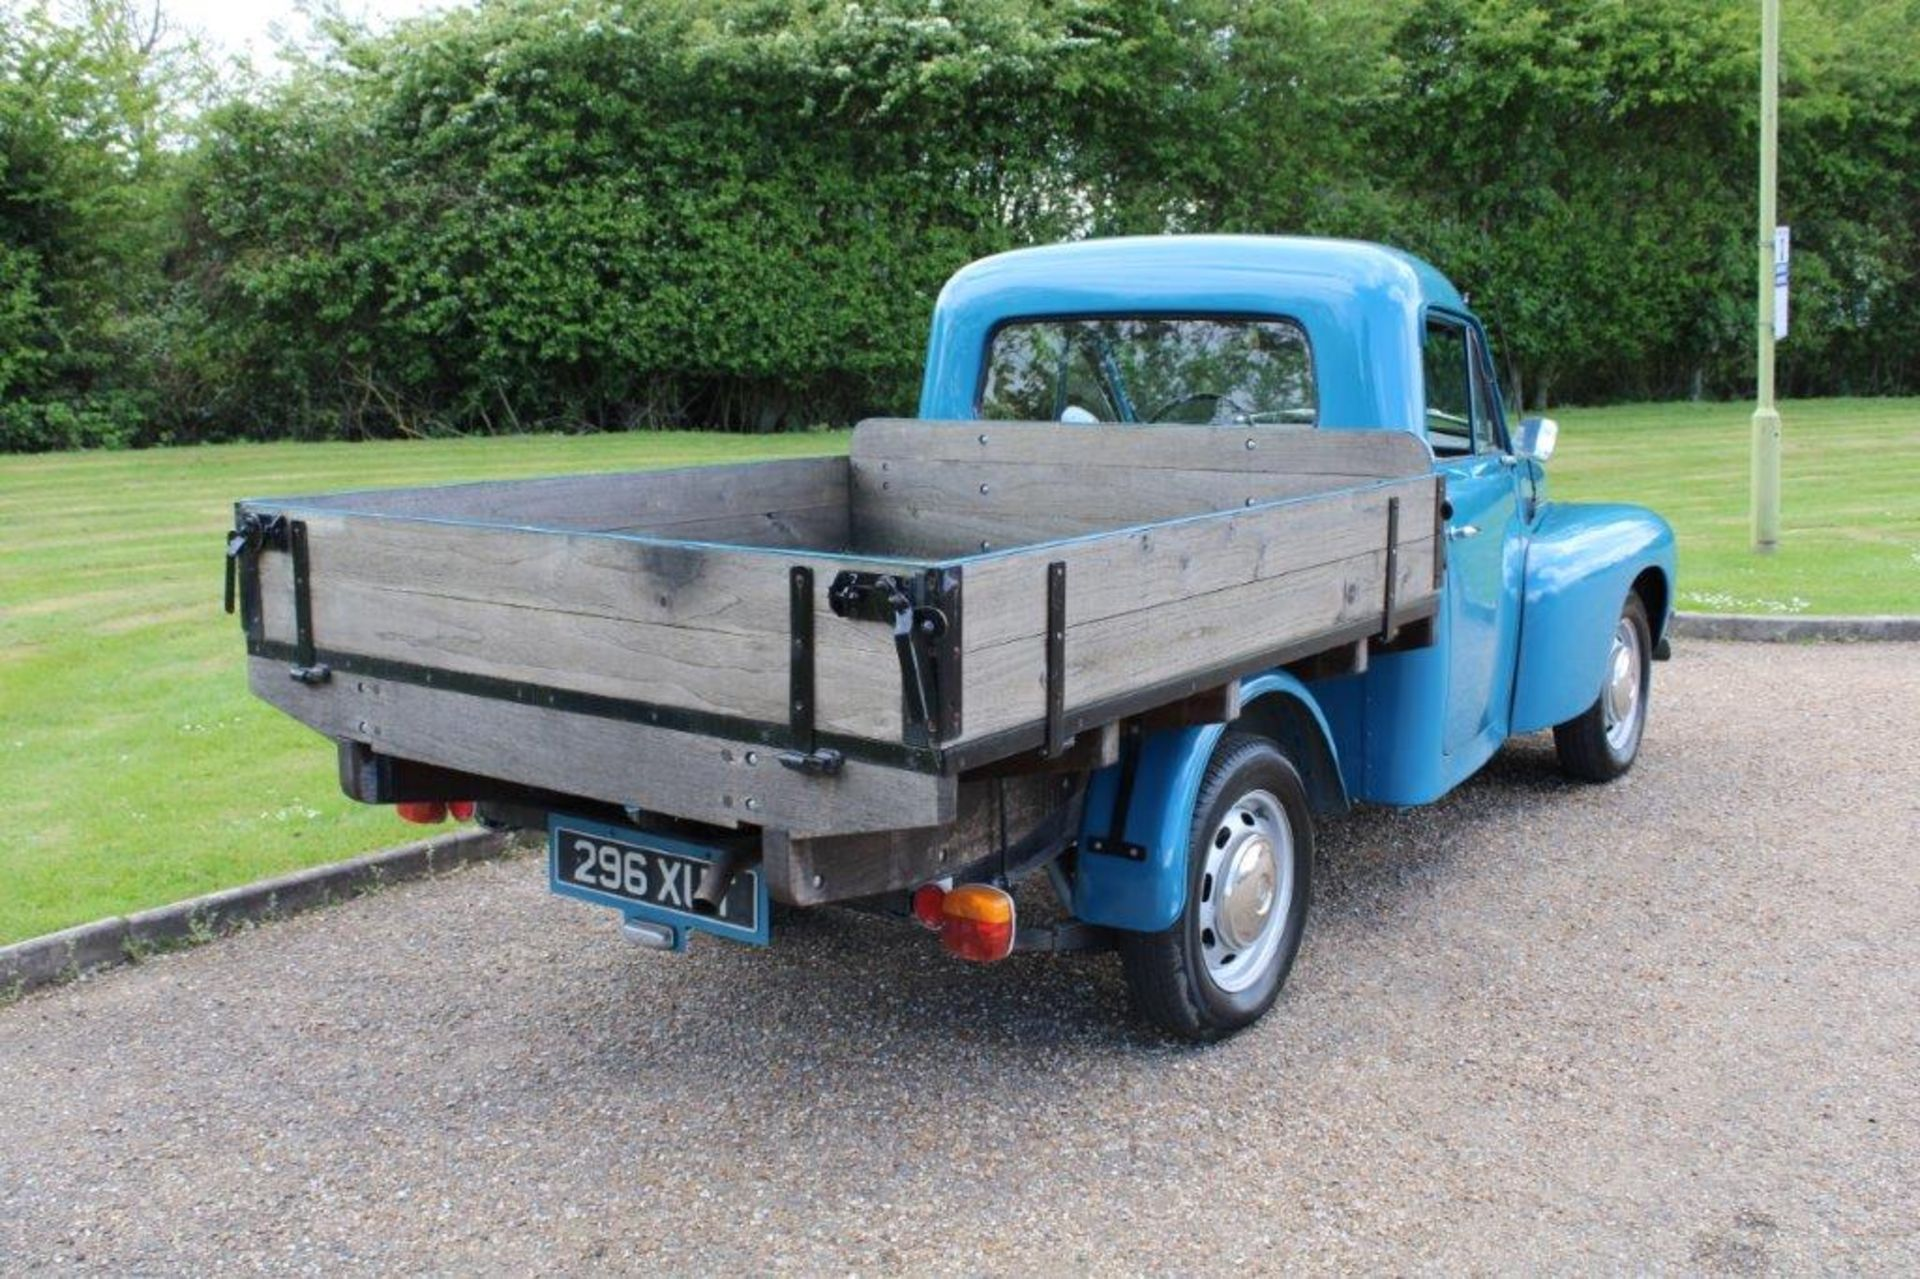 1961 Volvo P 21114 A Pick-Up LHD - Image 6 of 25